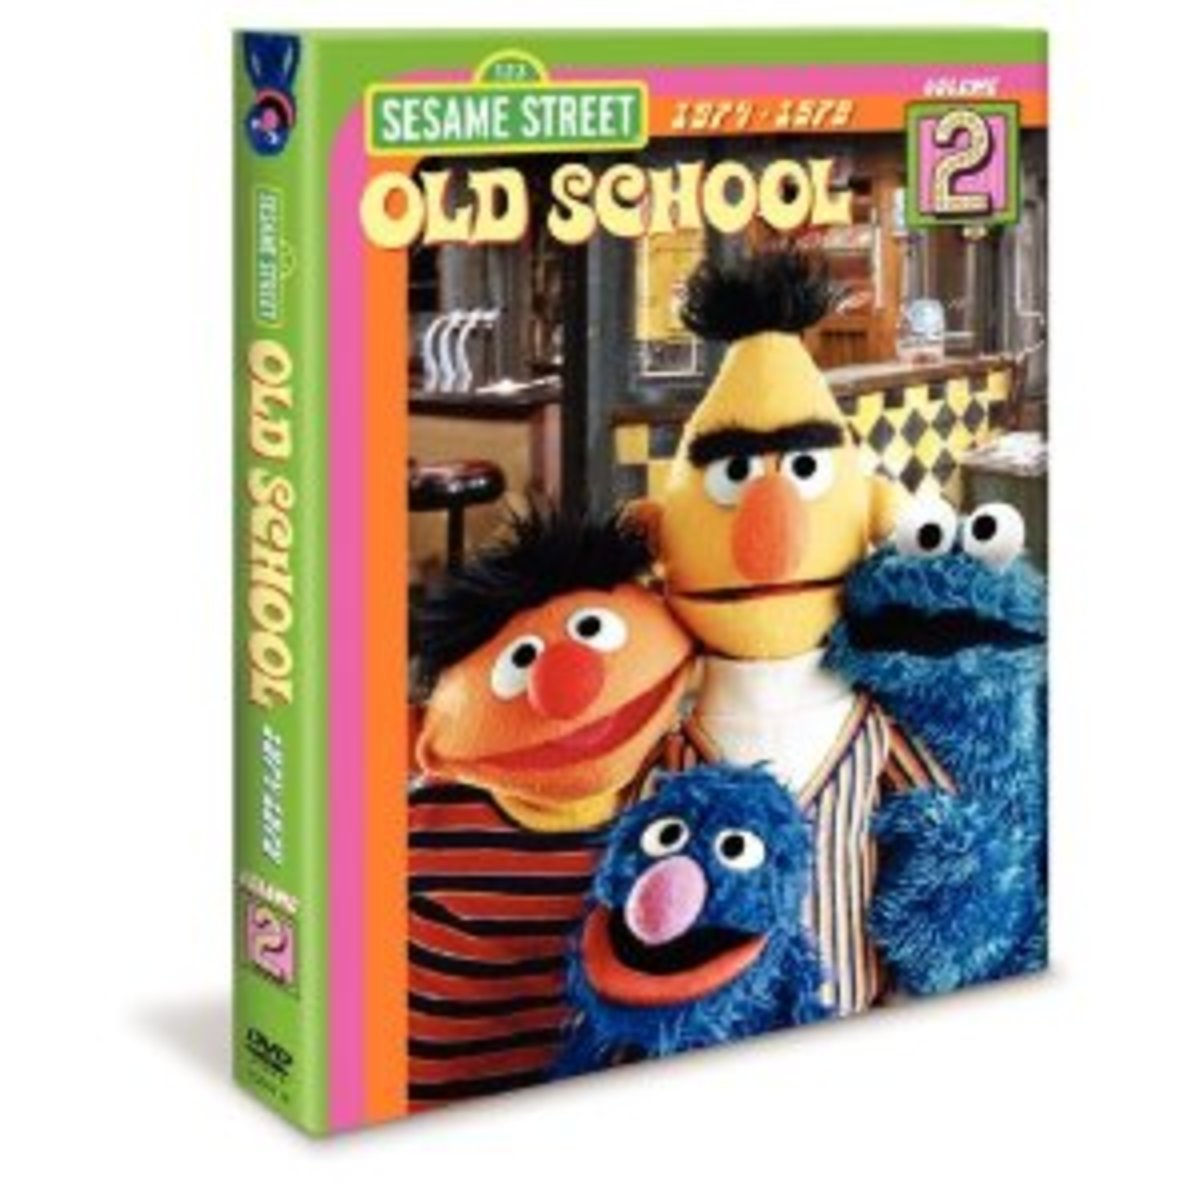 Sesame Street Old School Volume One